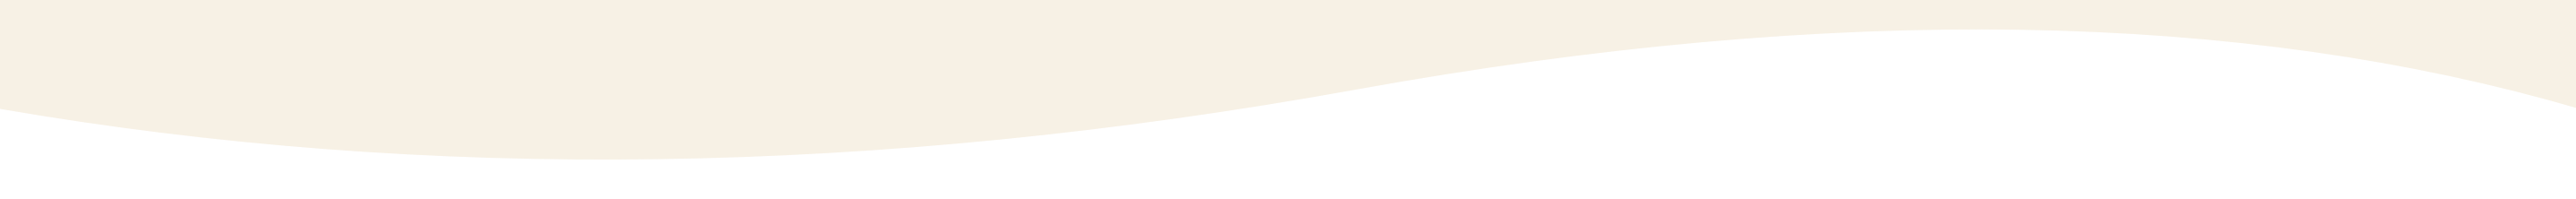 curve-background111